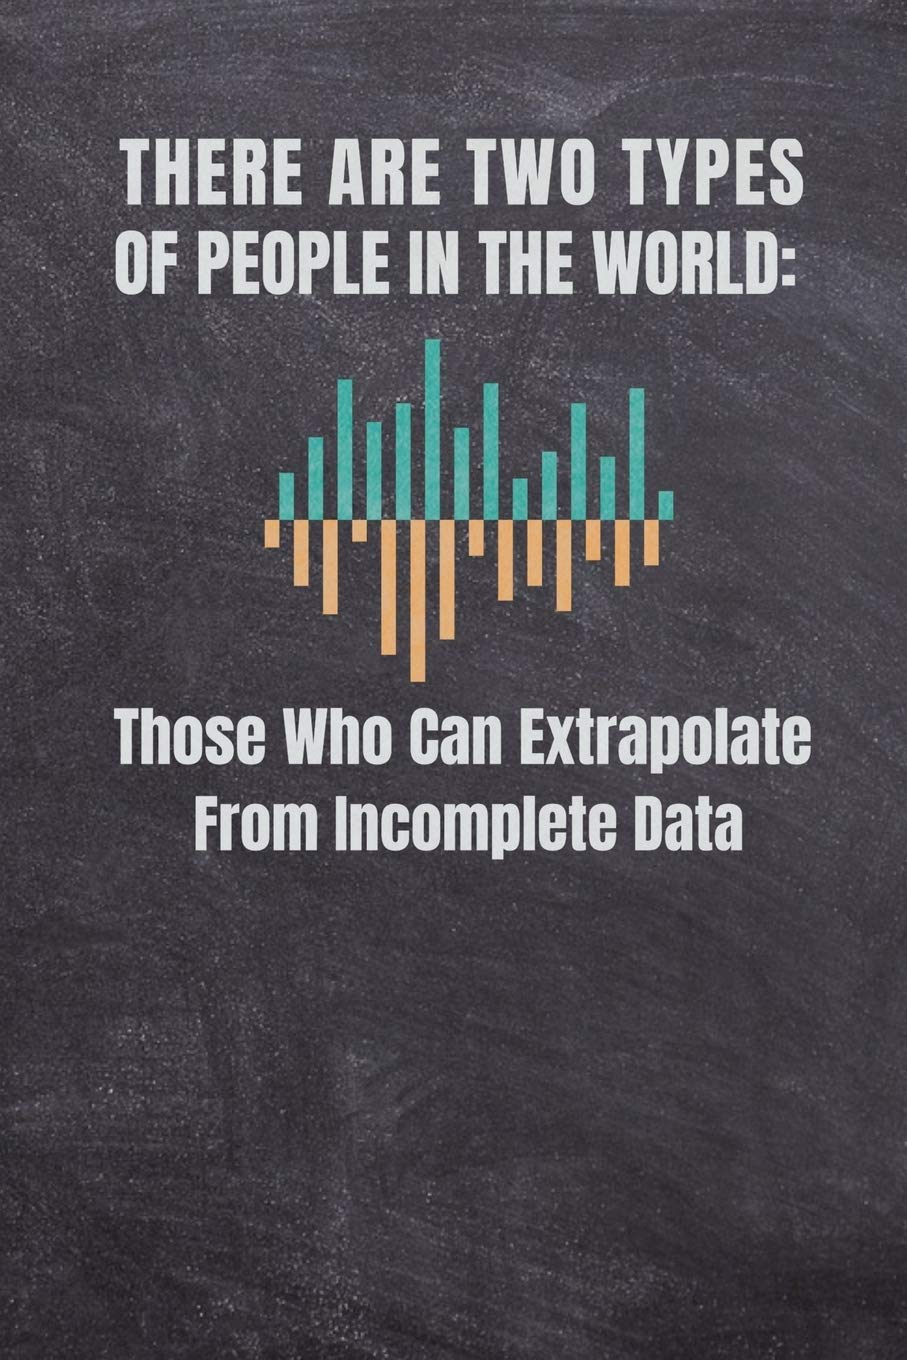 THERE ARE TWO TYPES OF PEOPLE IN THE WORLD THOSE WHO CAN EXTRAPOLATE FROM INCOMPLETE DATA: Computer Data Science Gift For Scientist Journal Notebook (120 Page Blank Line)